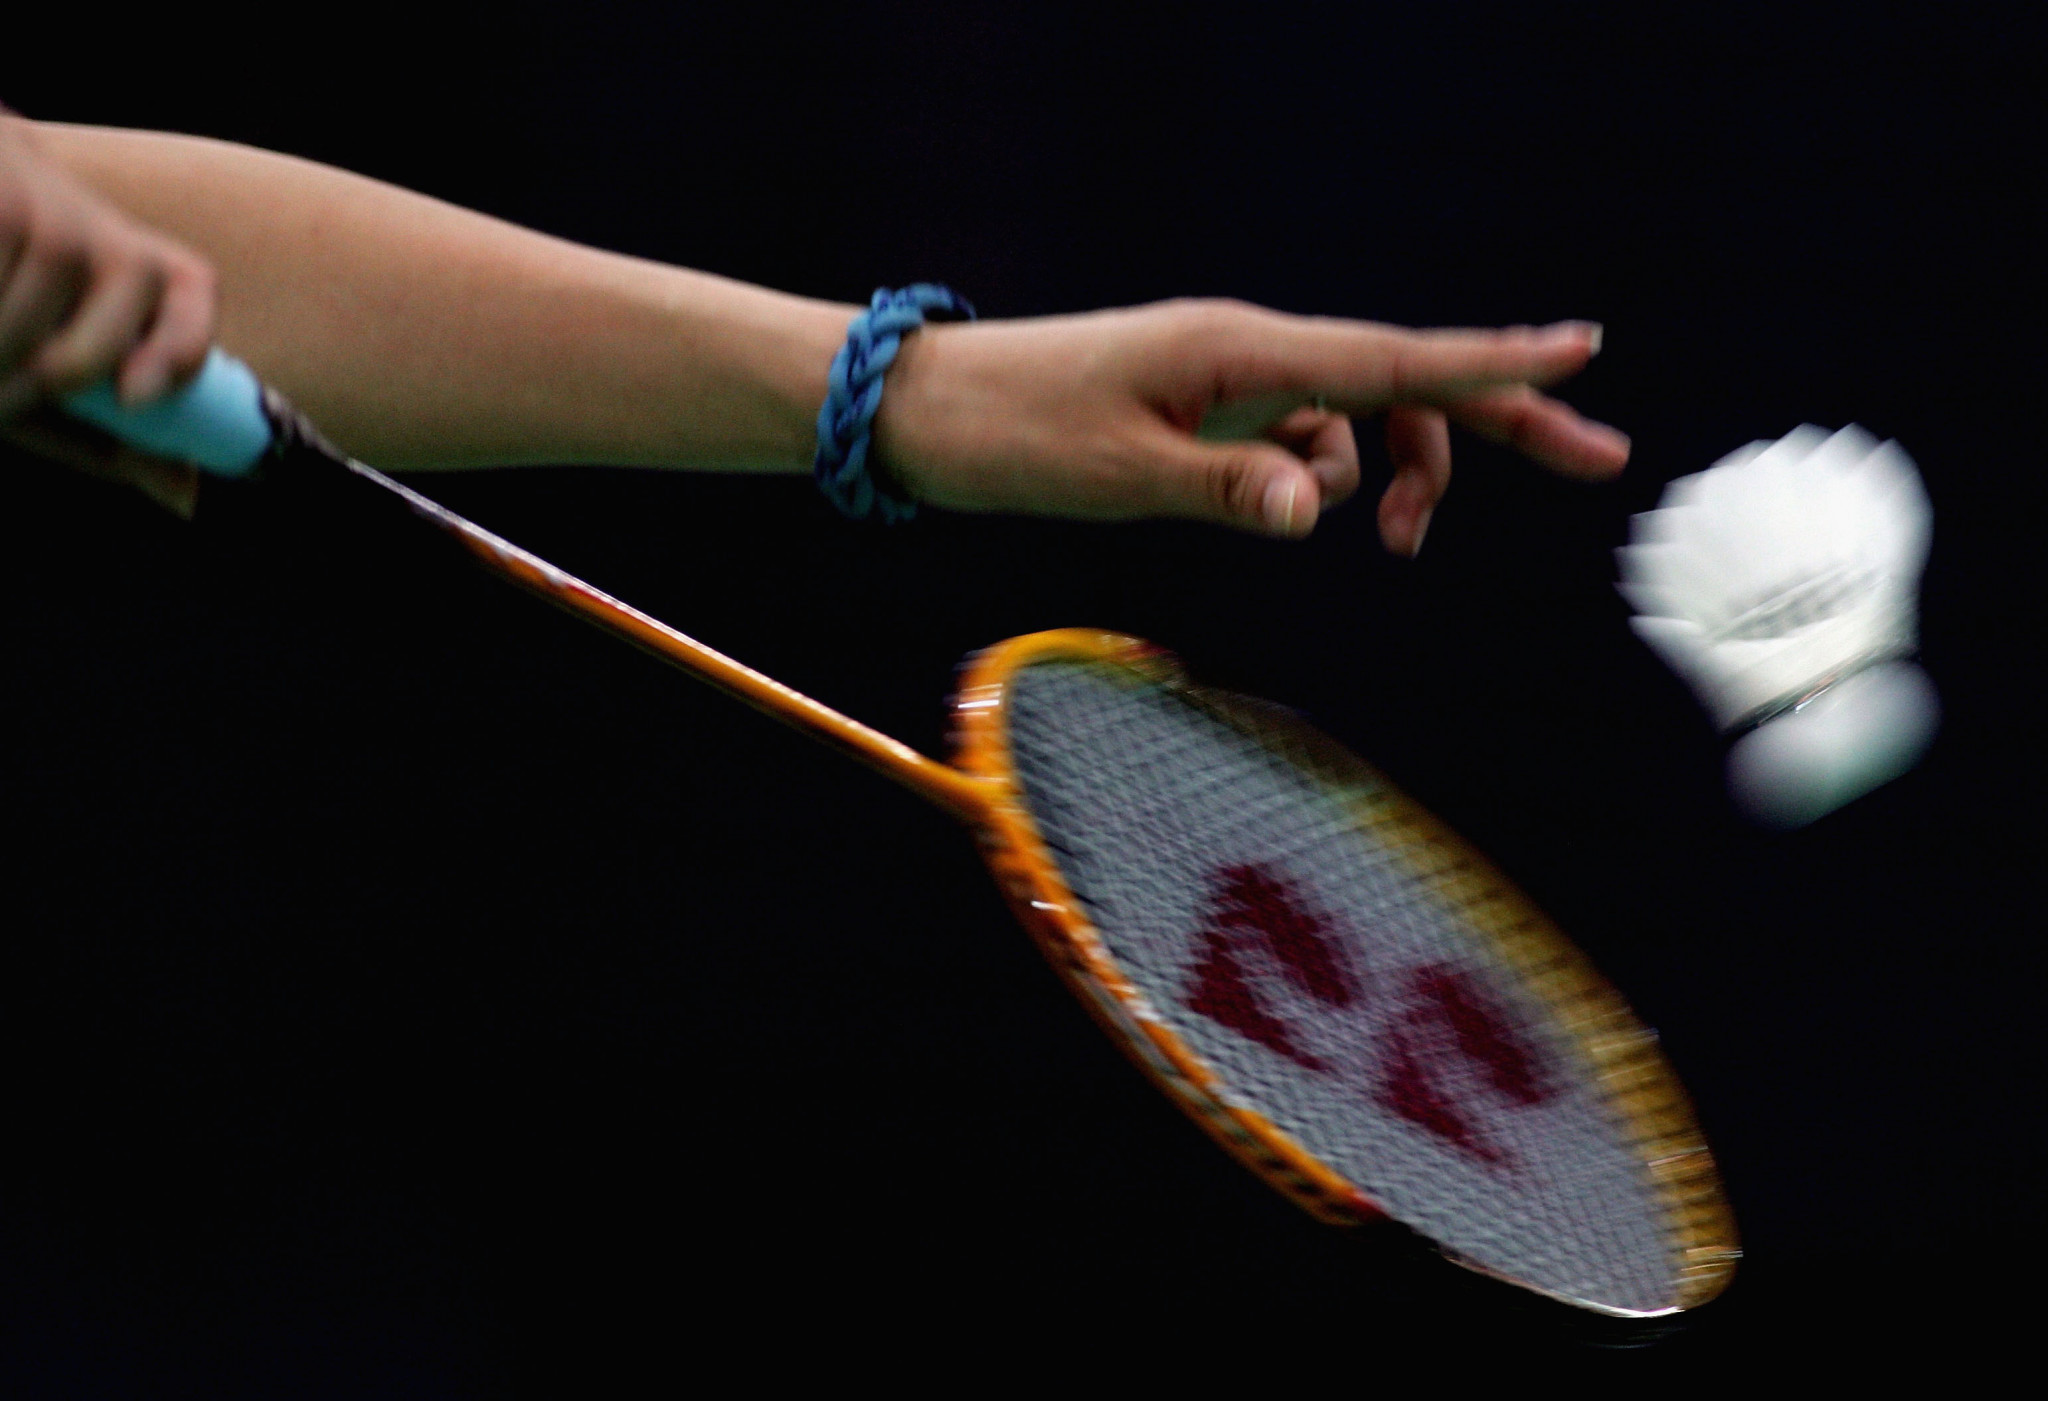 EOC adds badminton to 2023 European Games programme